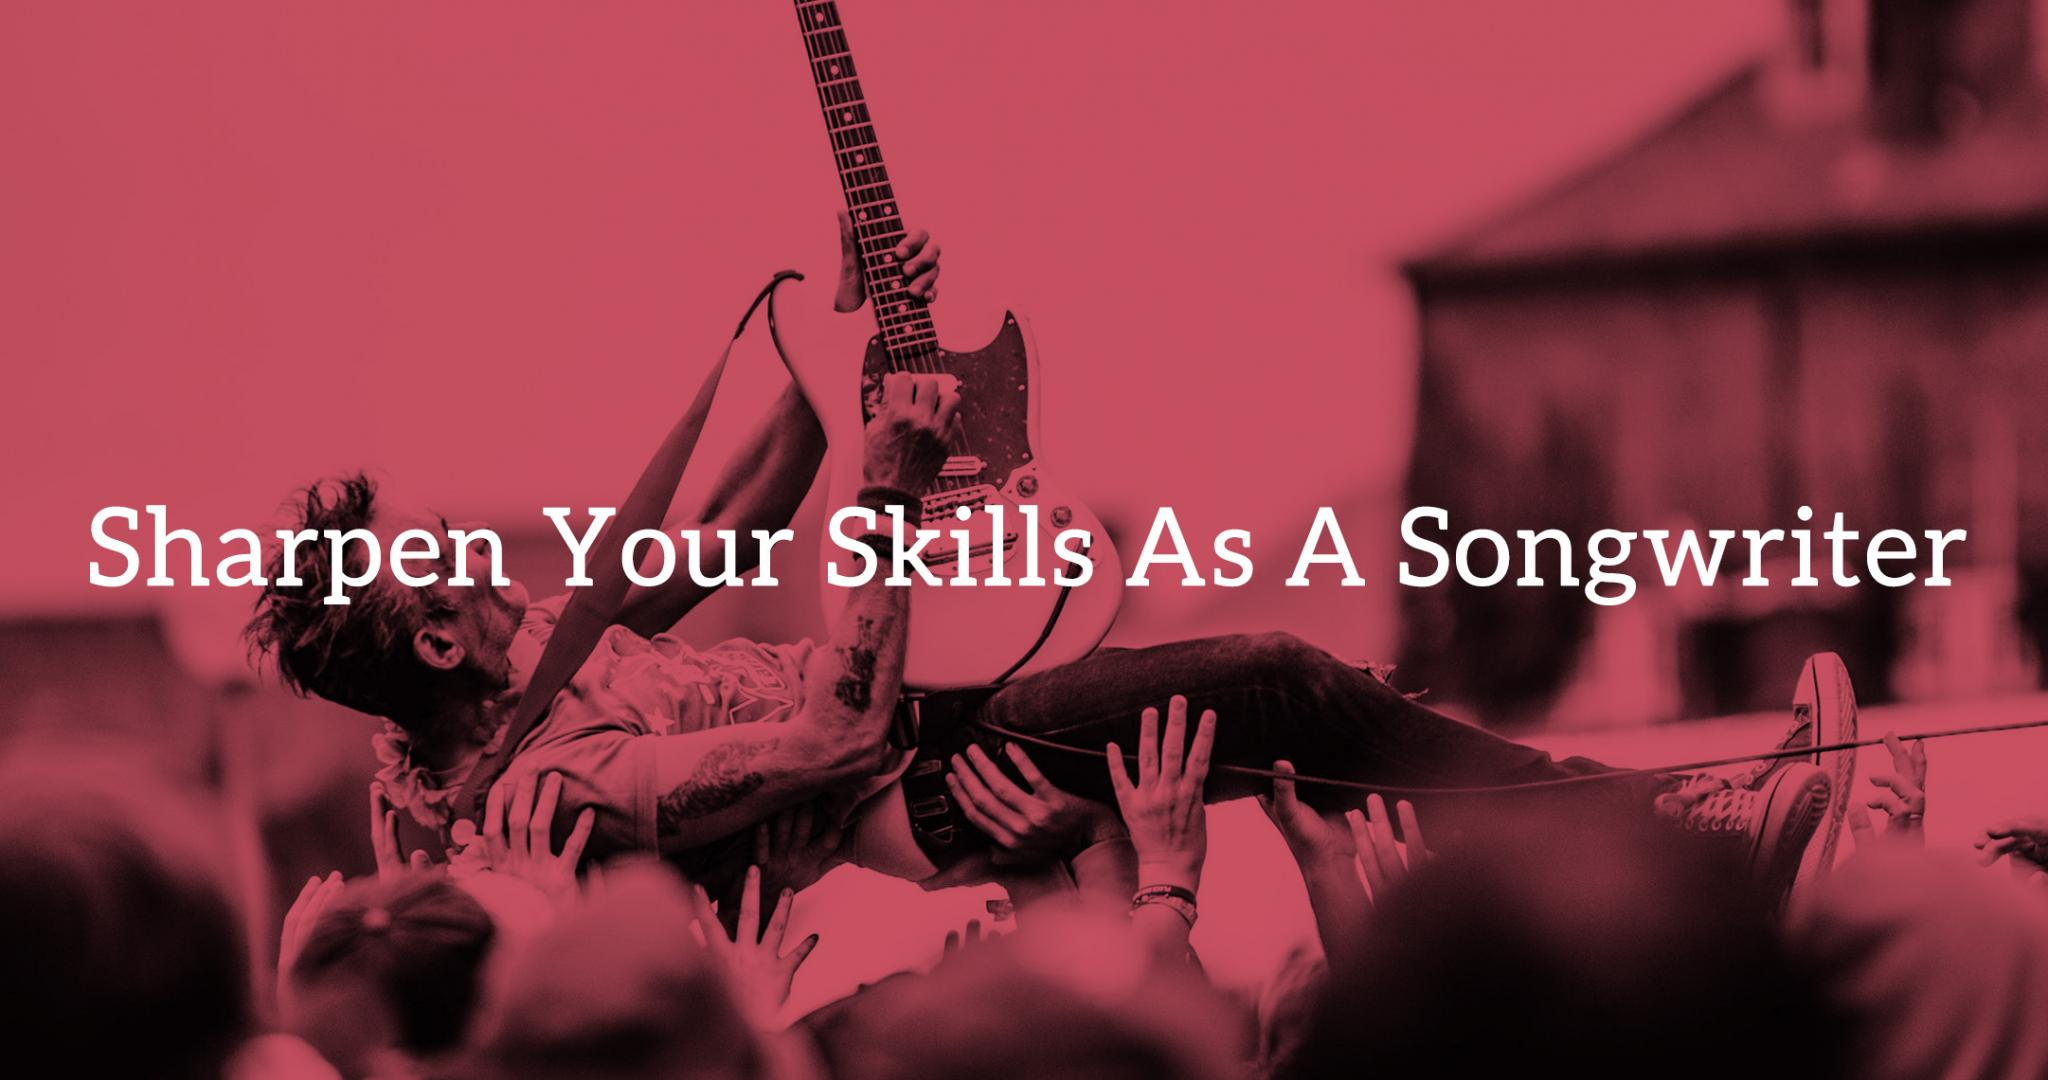 12 Ways: Sharpen Your Skills As A Songwriter